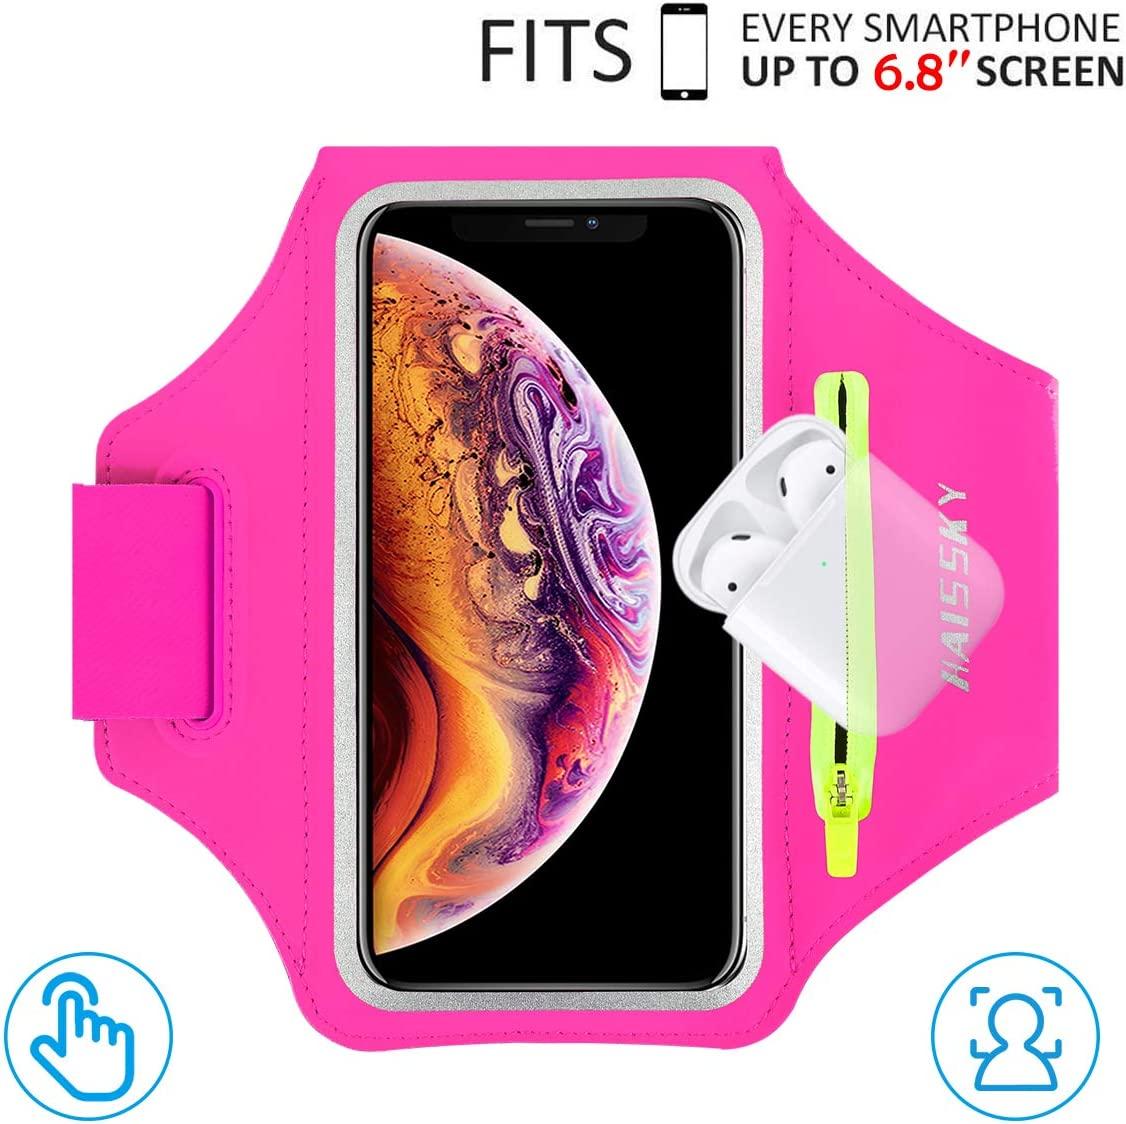 """HAISSKY Armband Case with Airpods Holder/Car Key Bag Cell Phone Holder Gym Case Fits iPhone 11 Pro Max/11 Pro/Xs Max/XR 8 7 6,Galaxy S10+/S10/S10e/S9+ with Key Holder&Card Slot up to 6.8"""" (Rose)"""